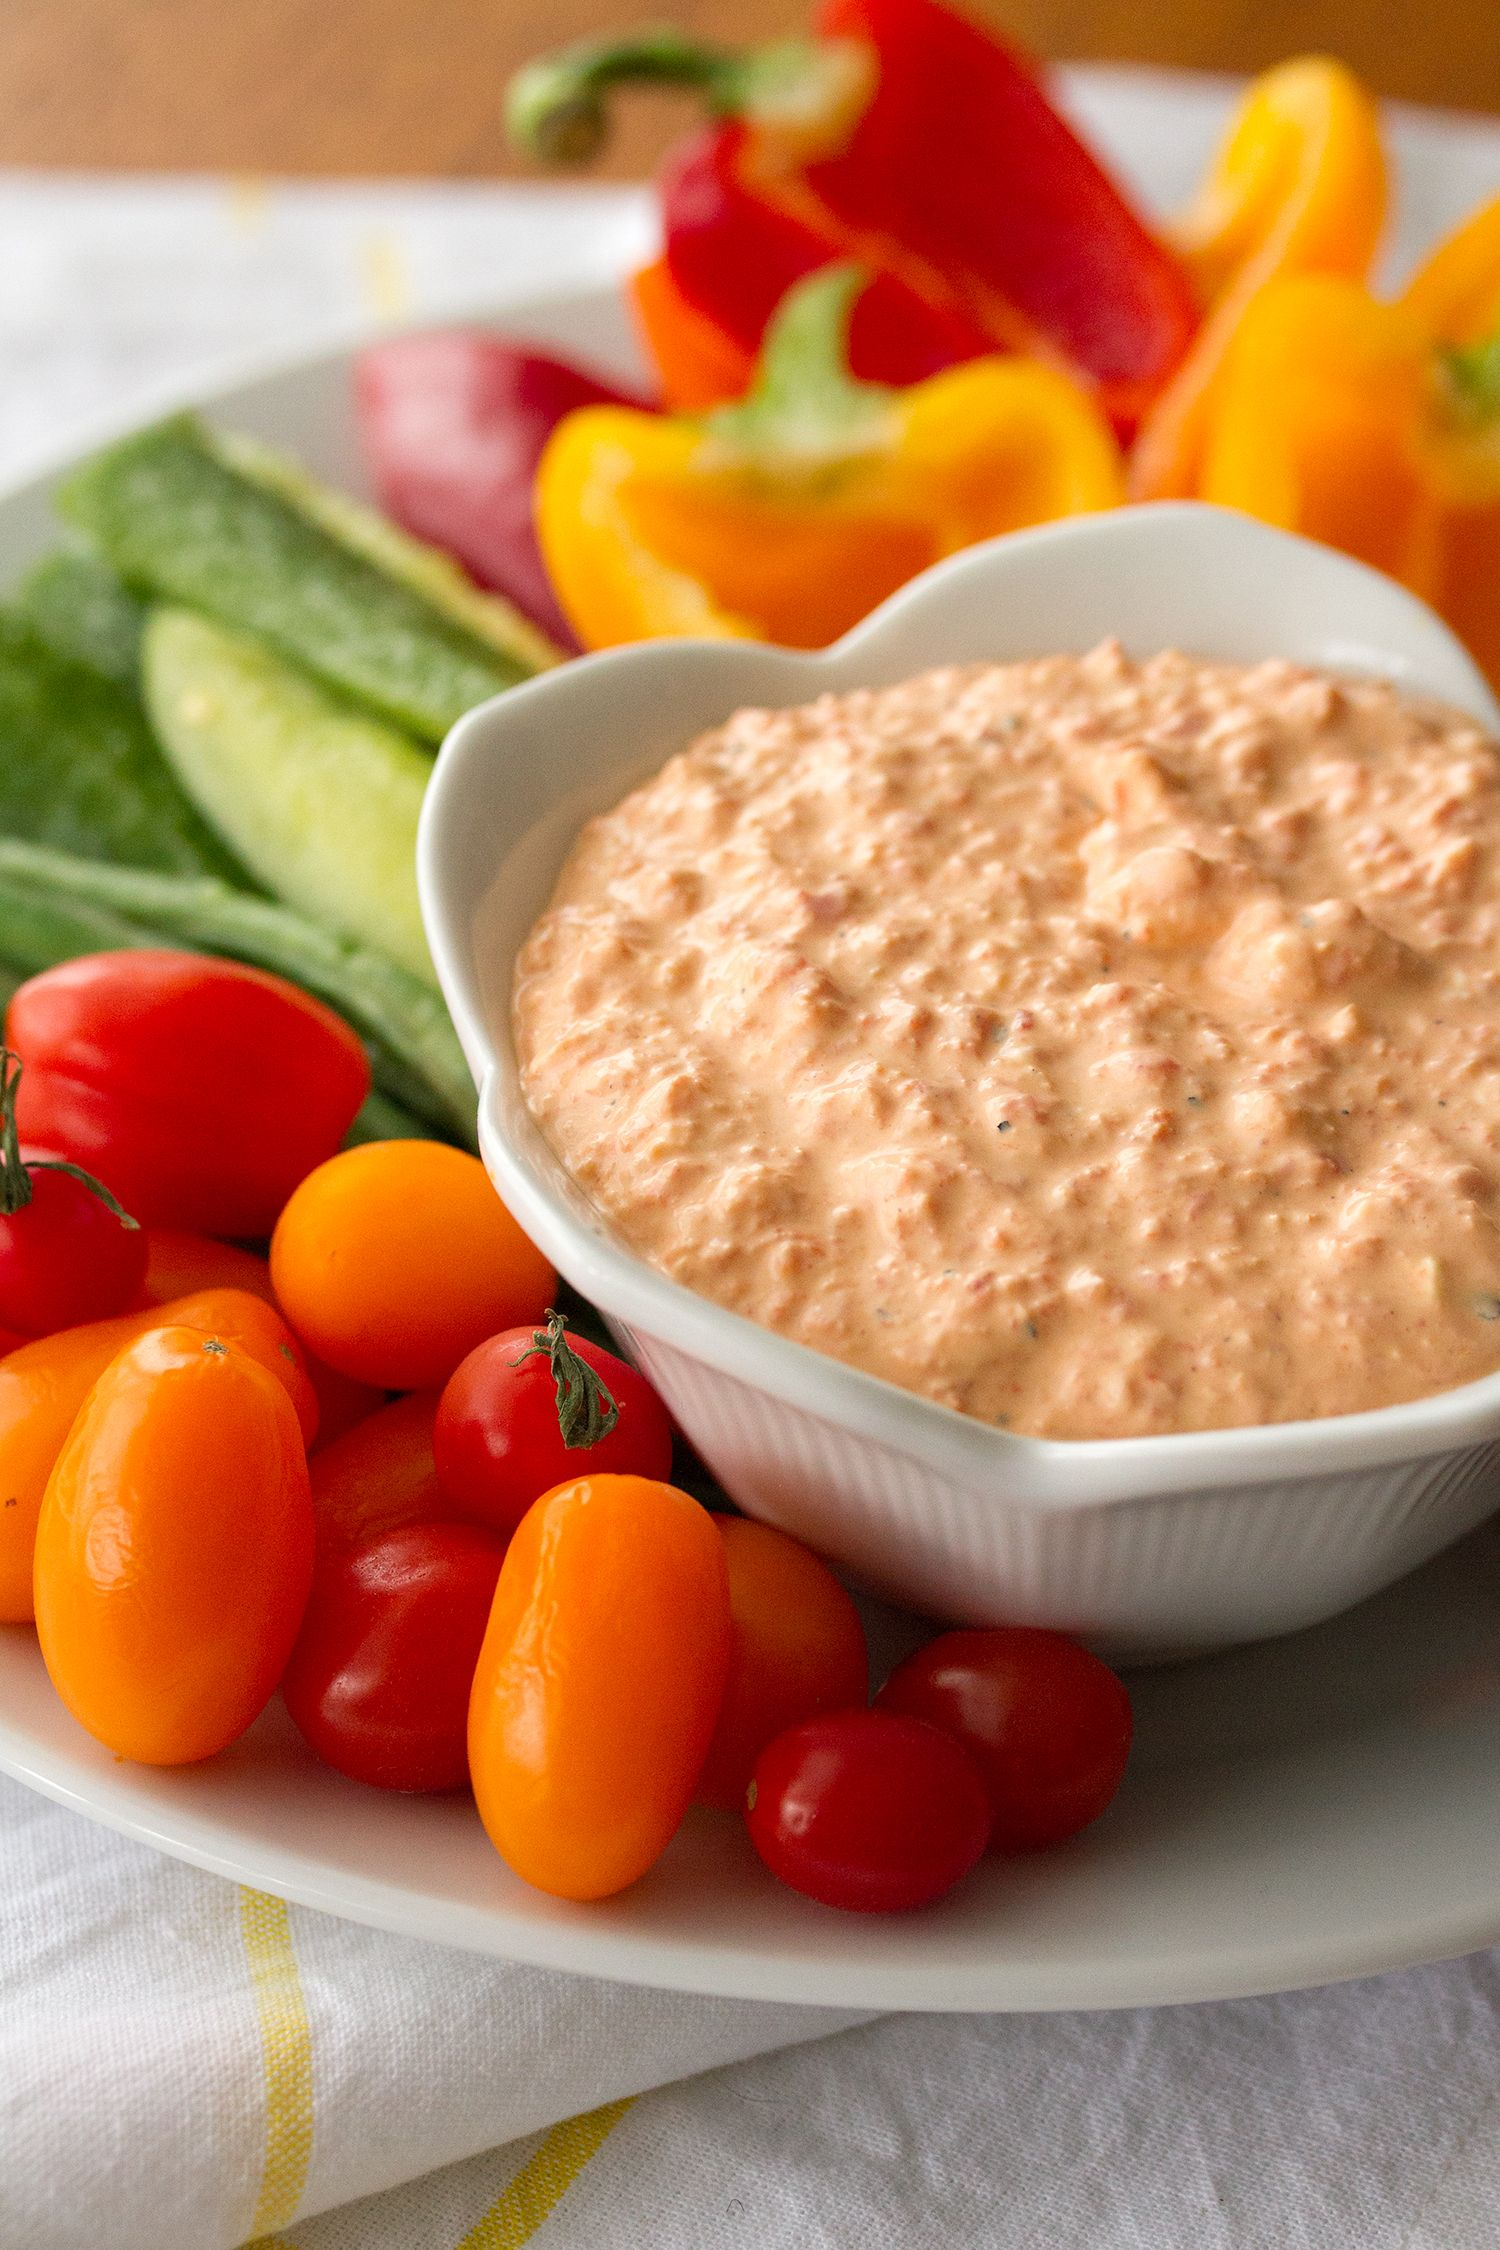 Ridiculously Easy Roasted Red Pepper Dip Crumb A Food Blog Recipe Stuffed Pepper Dip Stuffed Peppers Red Pepper Dip